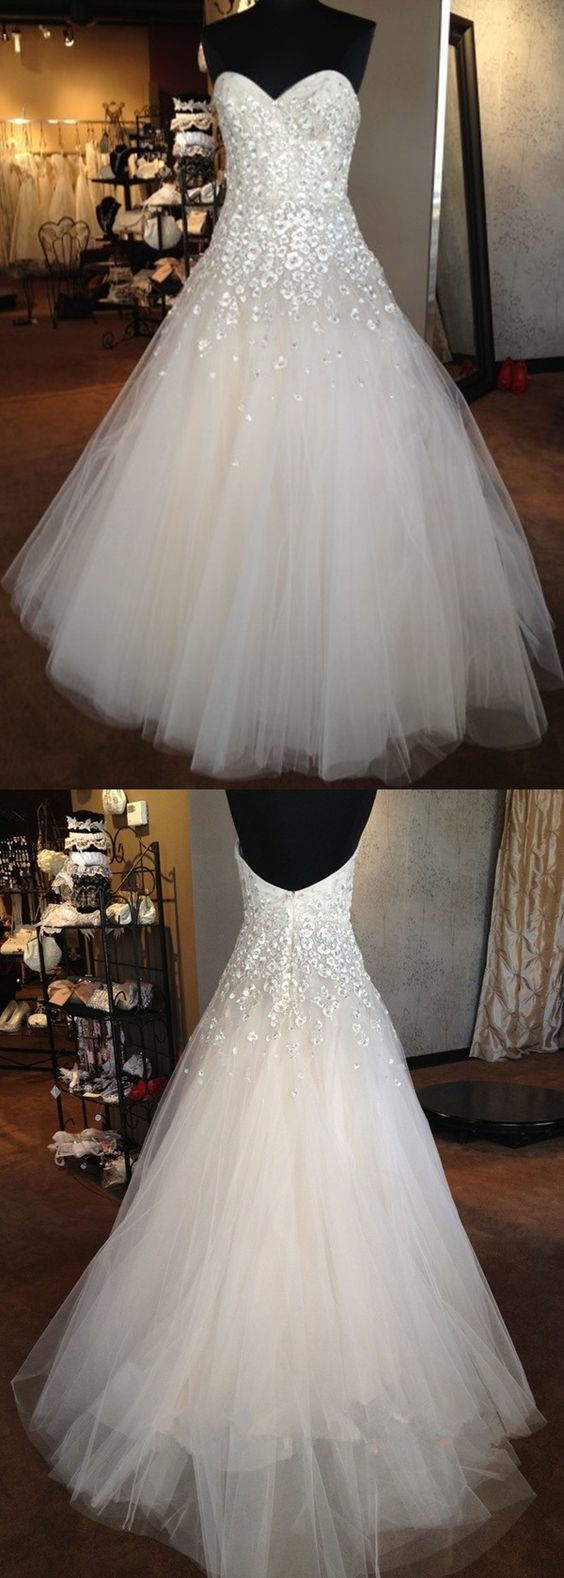 Charming Sweetheart neck Tulle Wedding Dress with Appliques